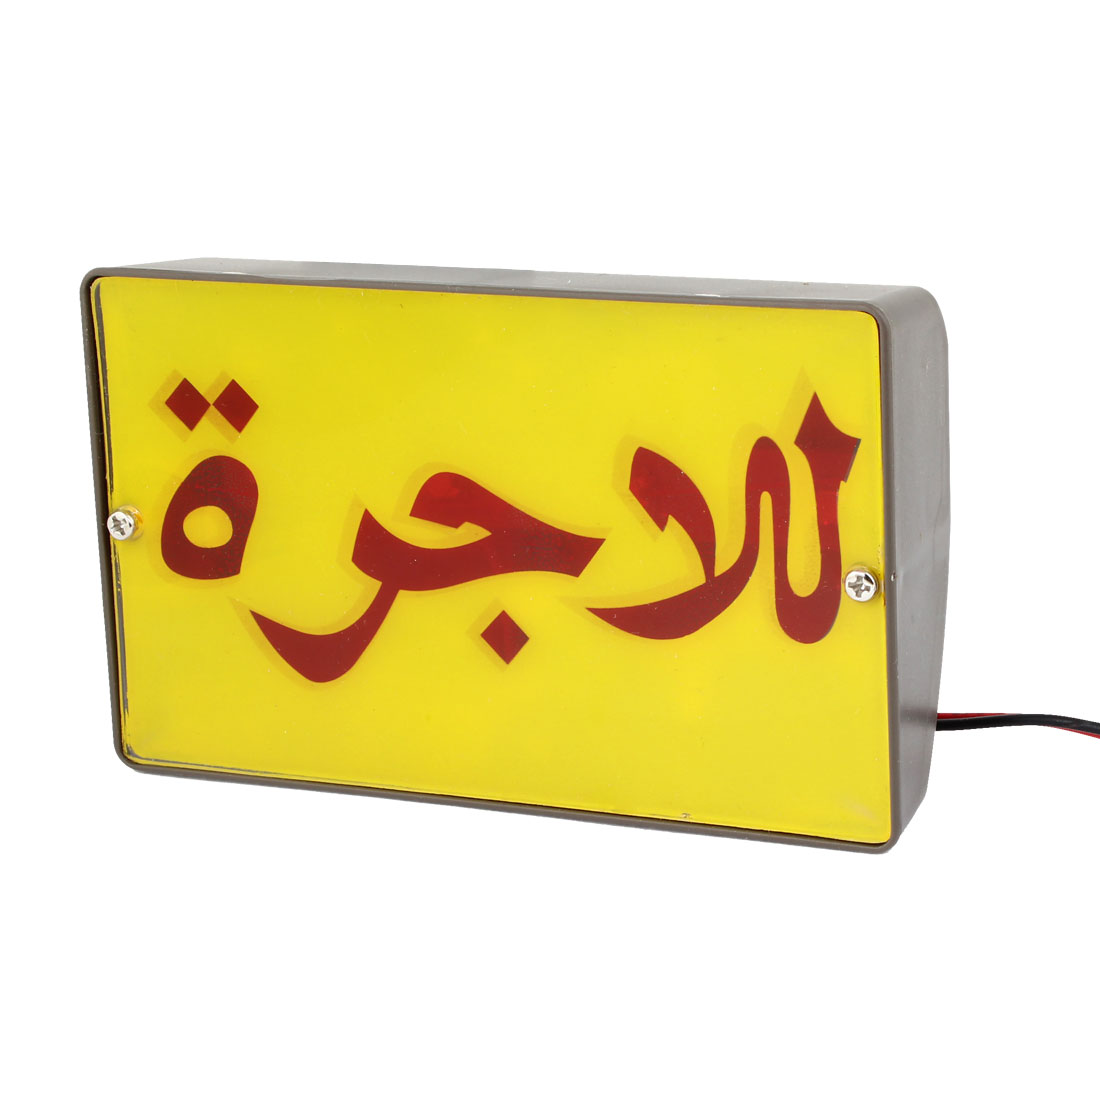 Car Vehicle Plastic Casing Taxi Sign Interior Light Yellow